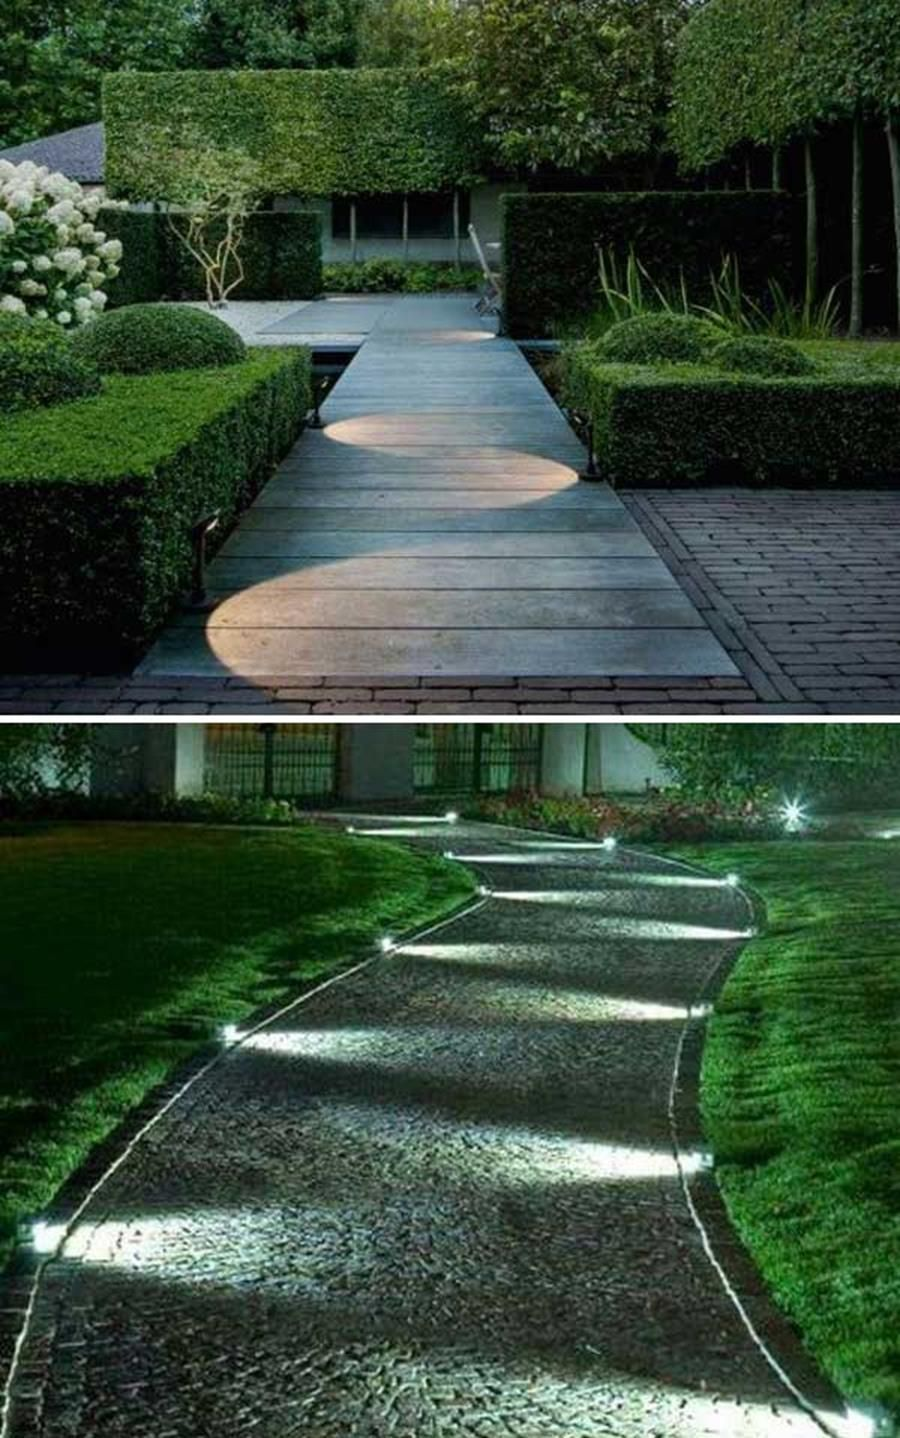 33 Perfect Walkway Landscape Lighting Ideas Comedecor Outdoor Landscape Lighting Diy Outdoor Lighting Landscape Lighting Design